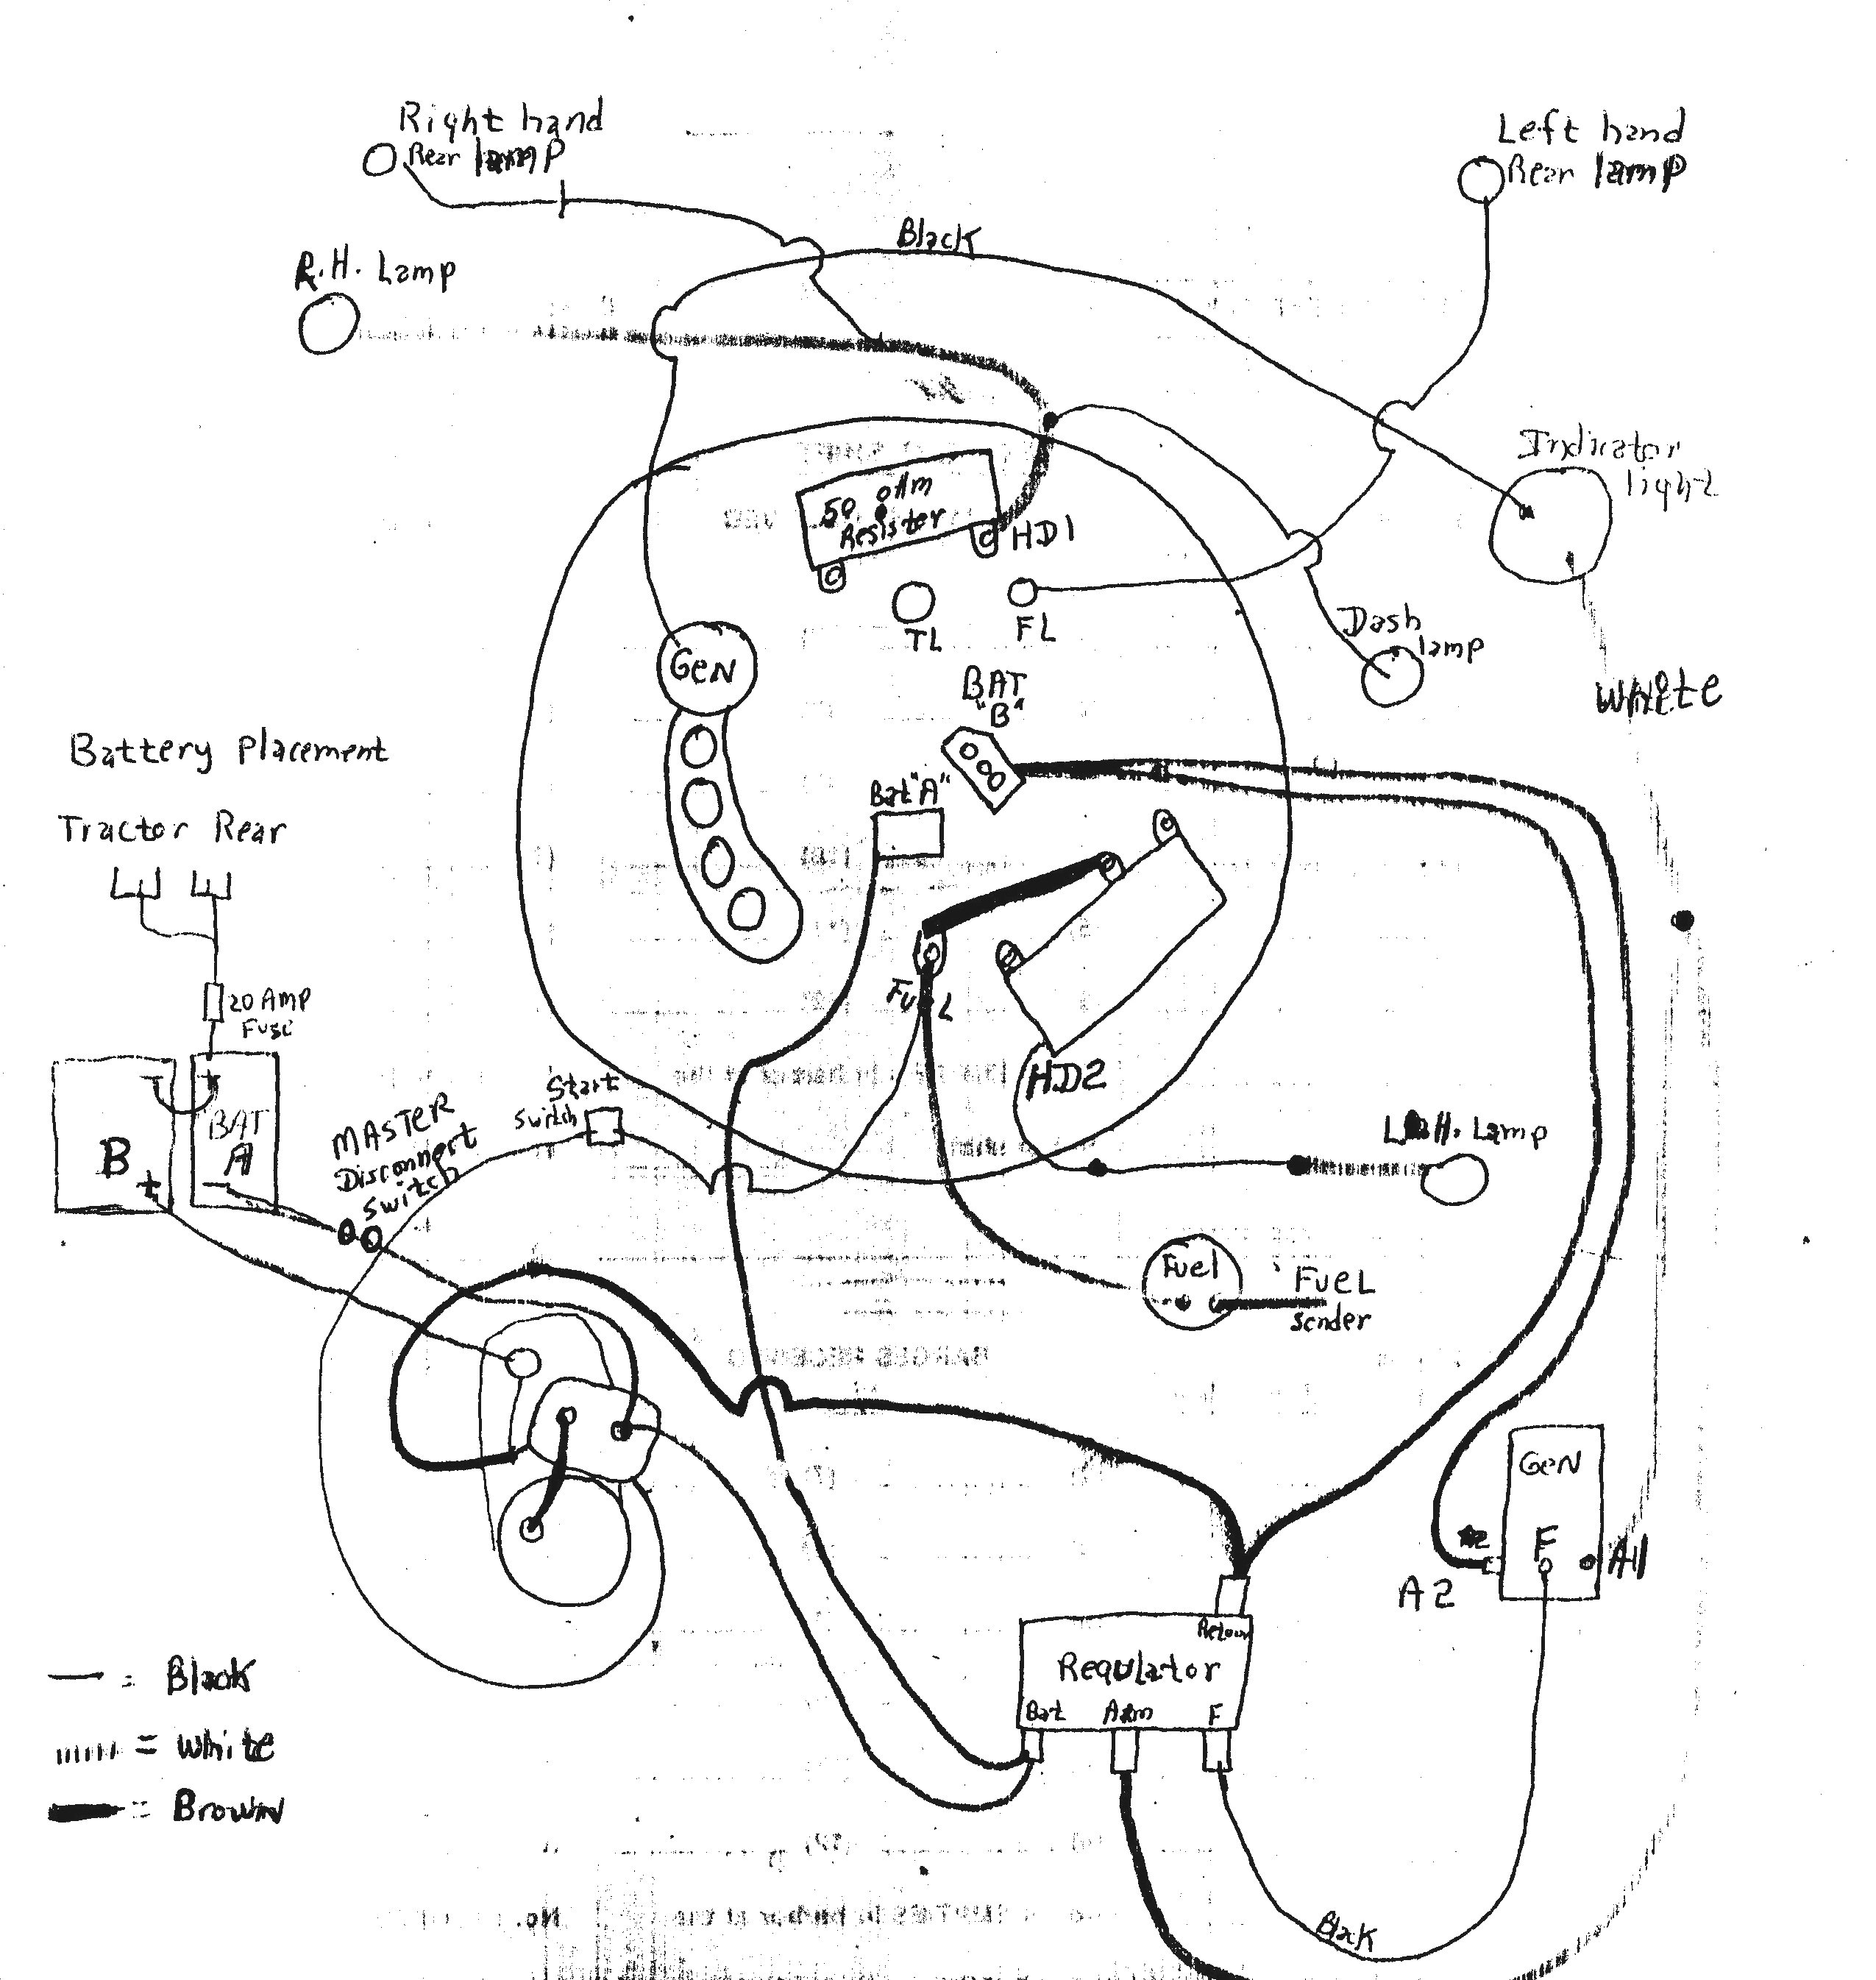 Ford Starter Solenoid Wiring Diagram Agriculture Tractors on john deere 4430 battery wiring diagram